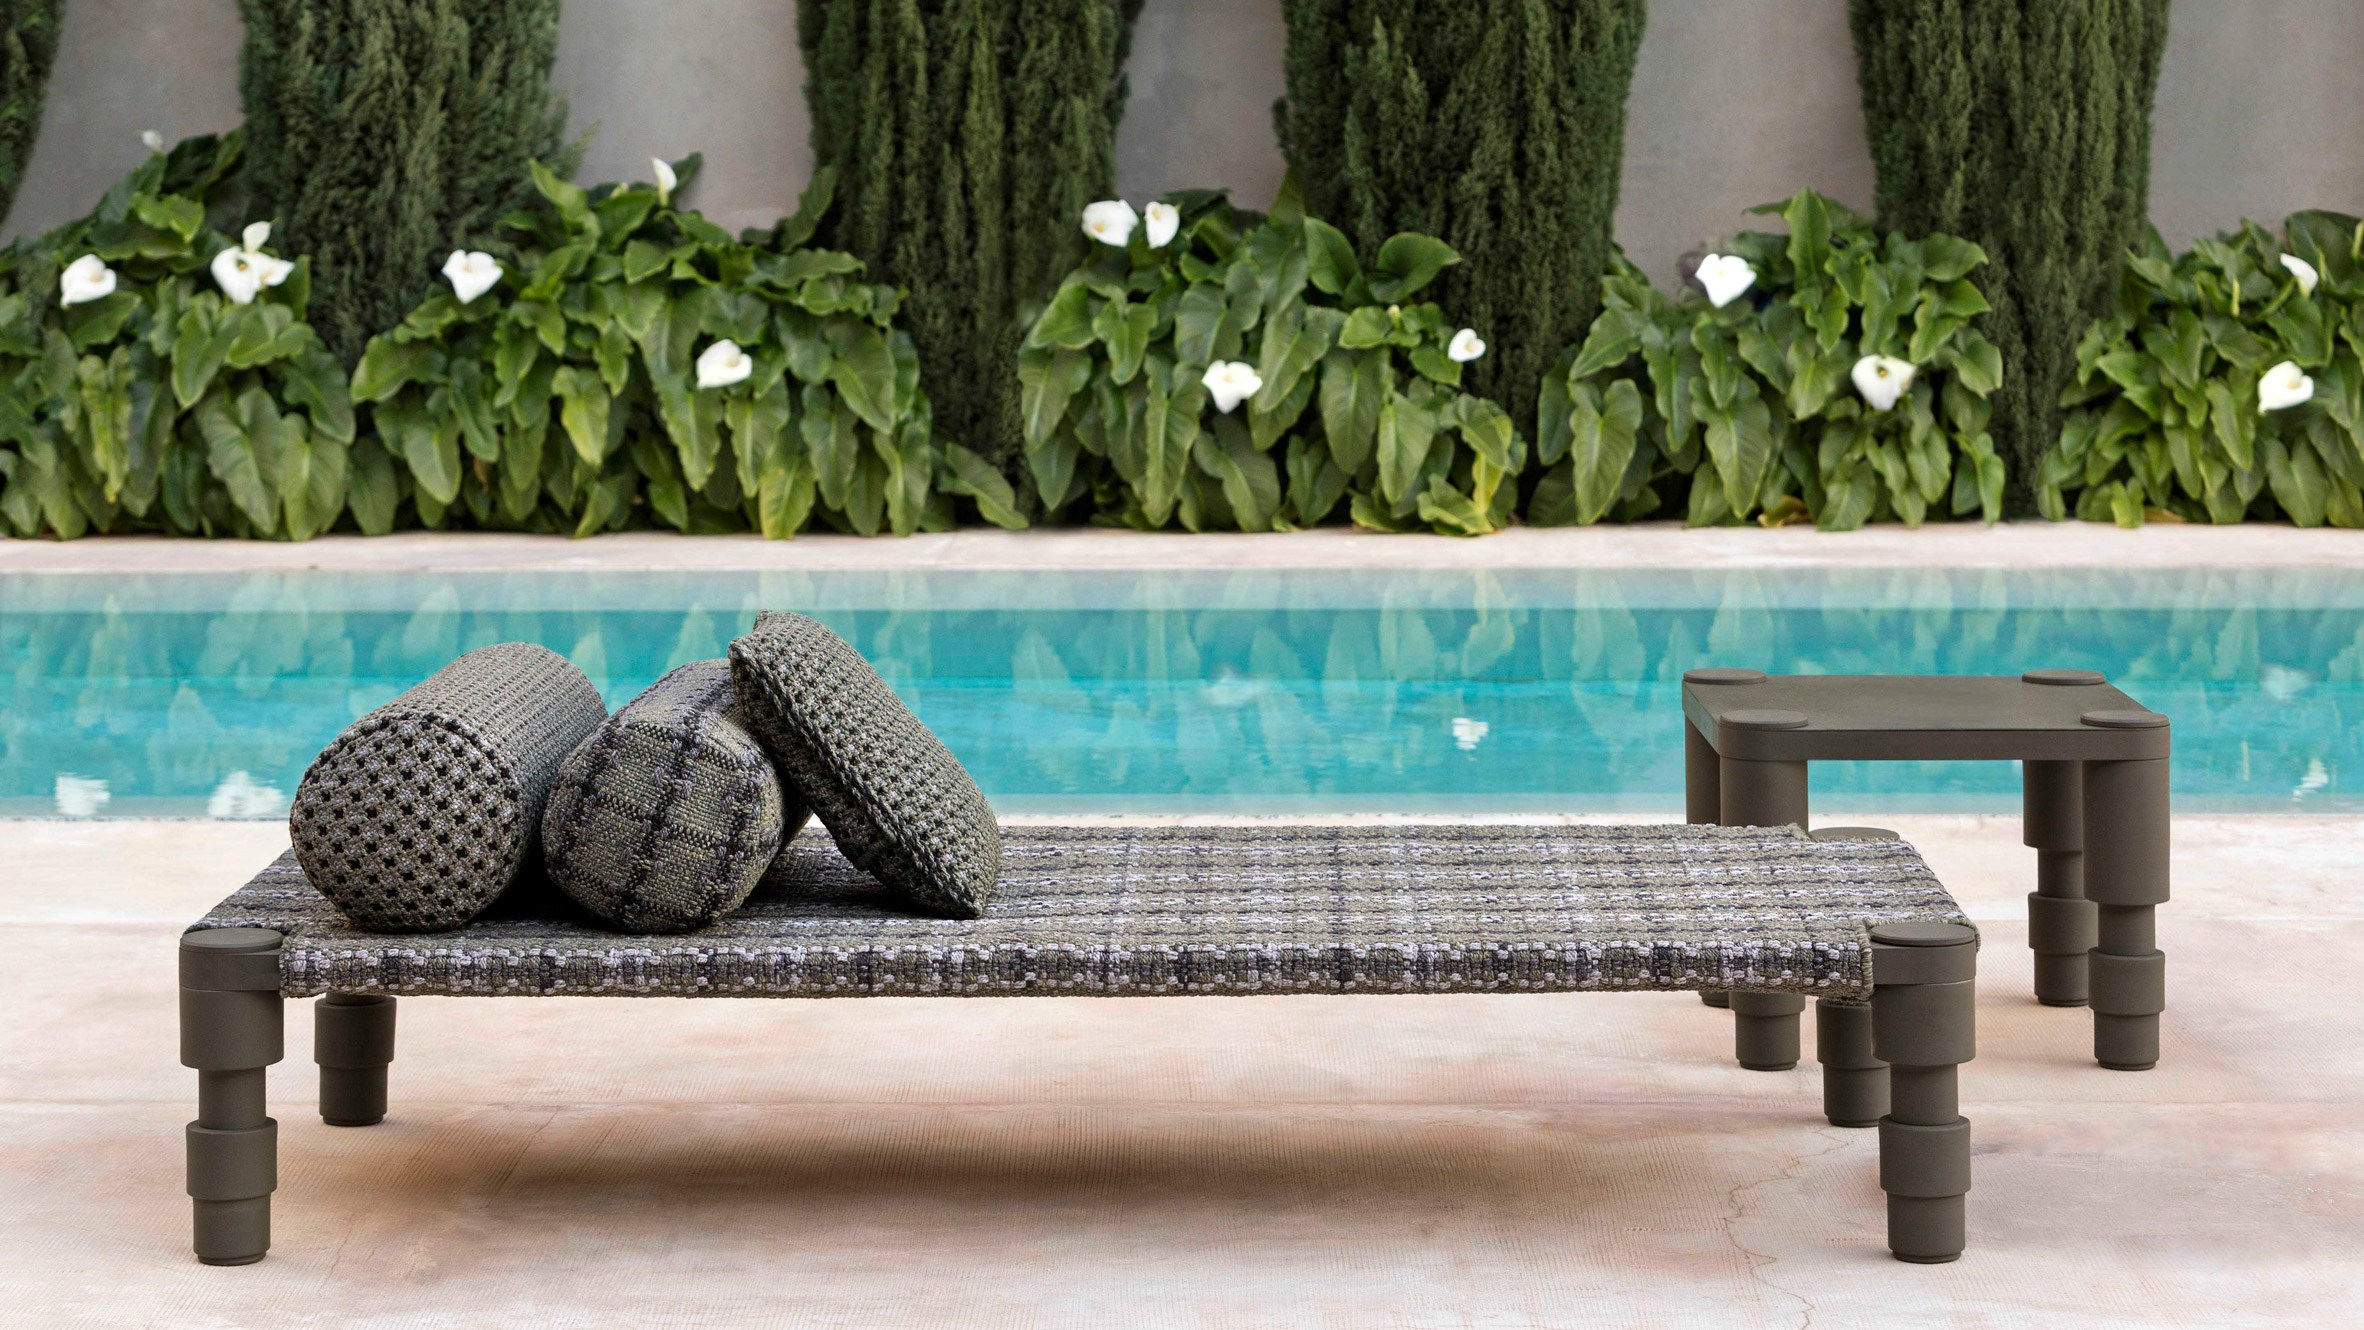 Design Inspiration For Your Outdoor Spaces (6) outdoor space Design Inspiration For Your Outdoor Spaces Design Inspiration For Your Outdoor Spaces 6